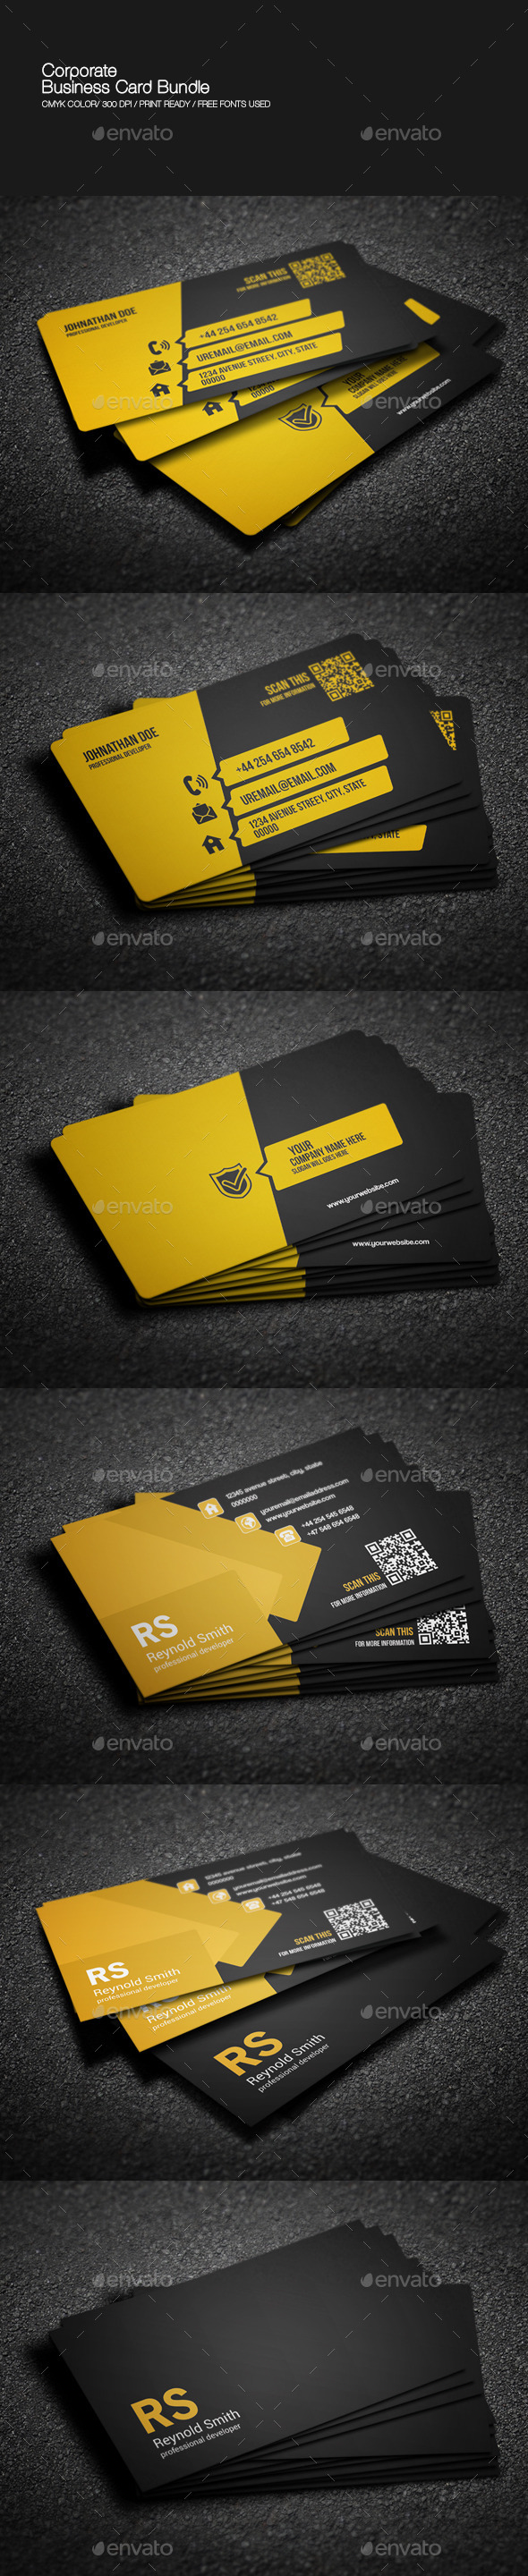 GraphicRiver Corporate Business Card Bundle 8973816